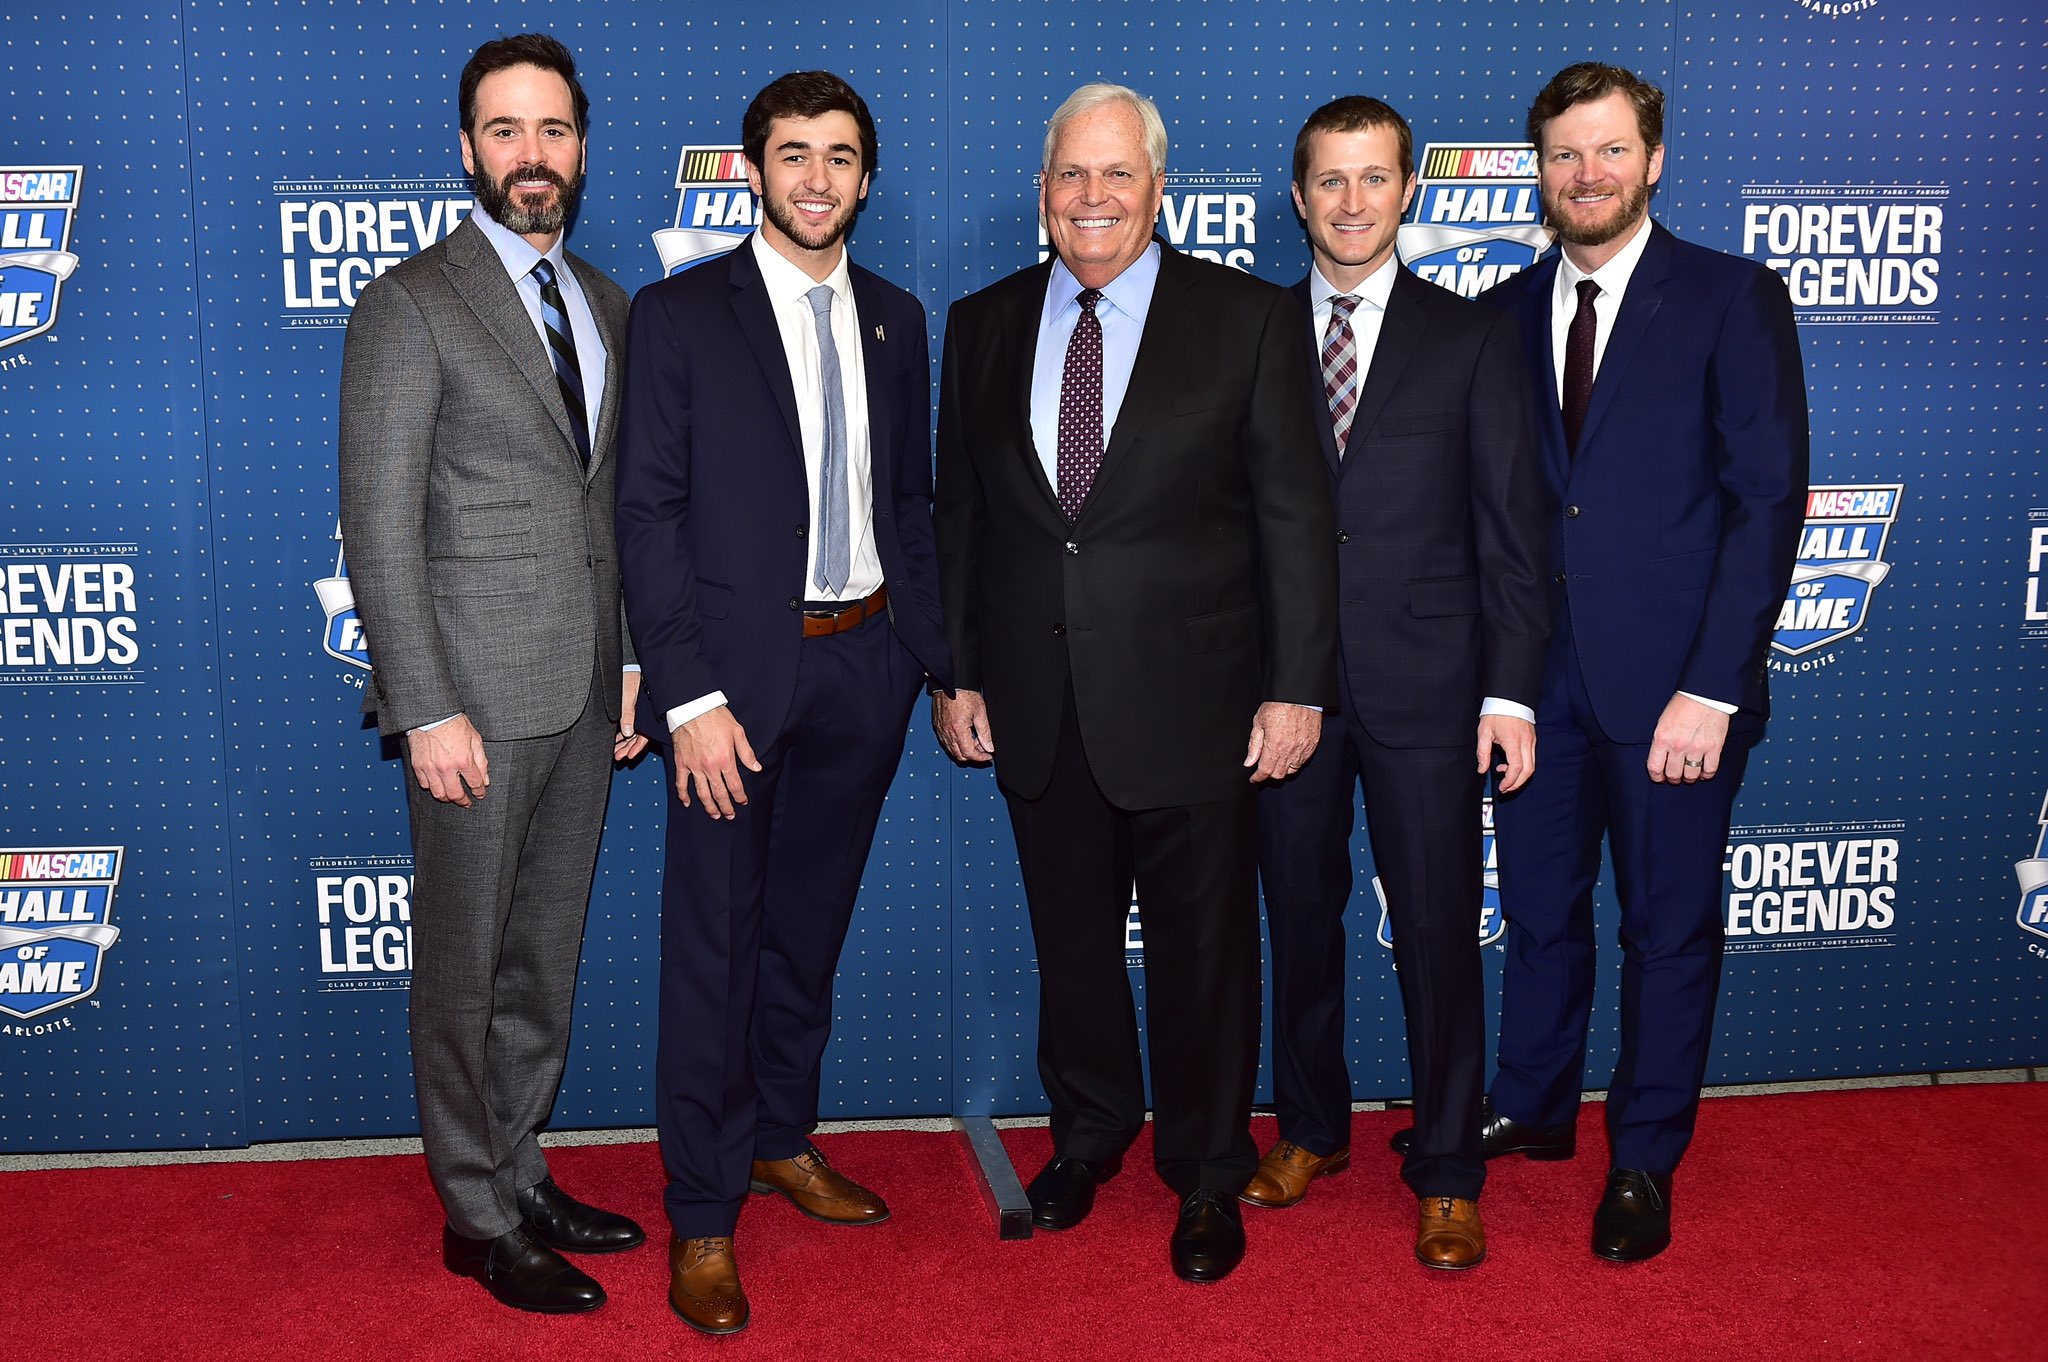 Hendrick Motorsports drivers launch disaster relief fund with $500,000 goal.  Details: https://t.co/8k4uO76DuL https://t.co/4noN4EFxP0